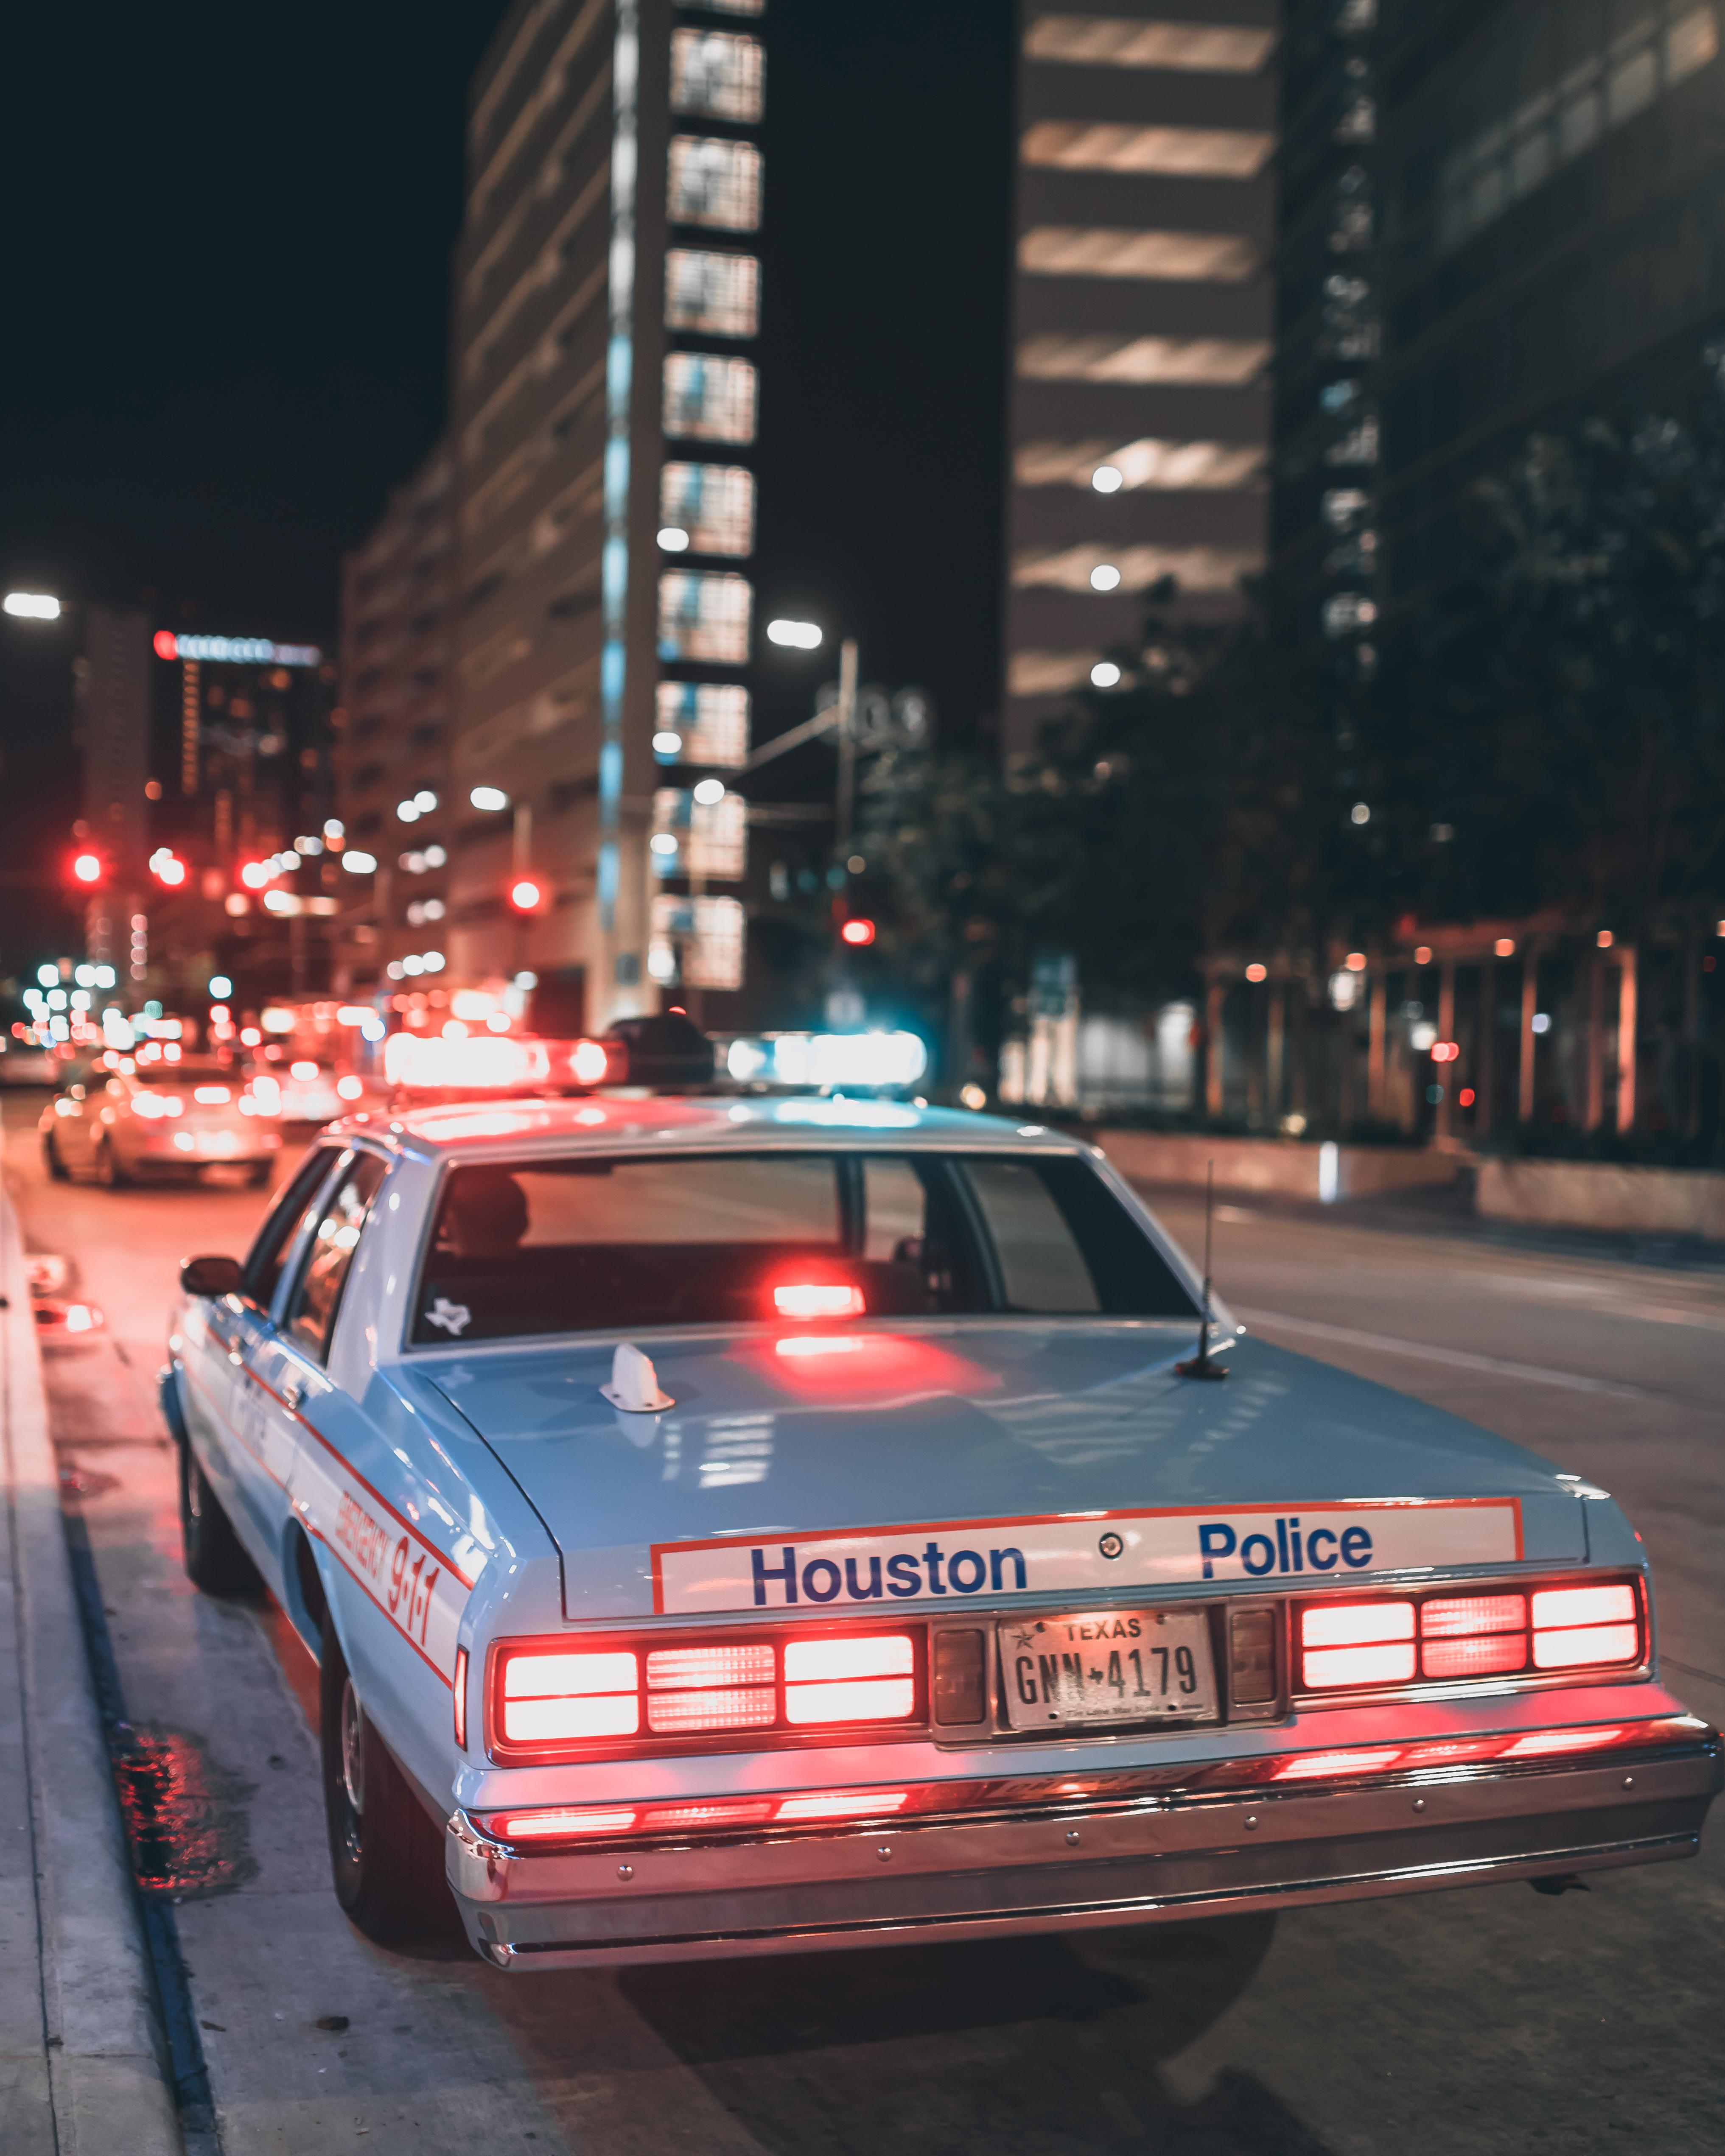 Okay who's old enough to remember this HPD car?